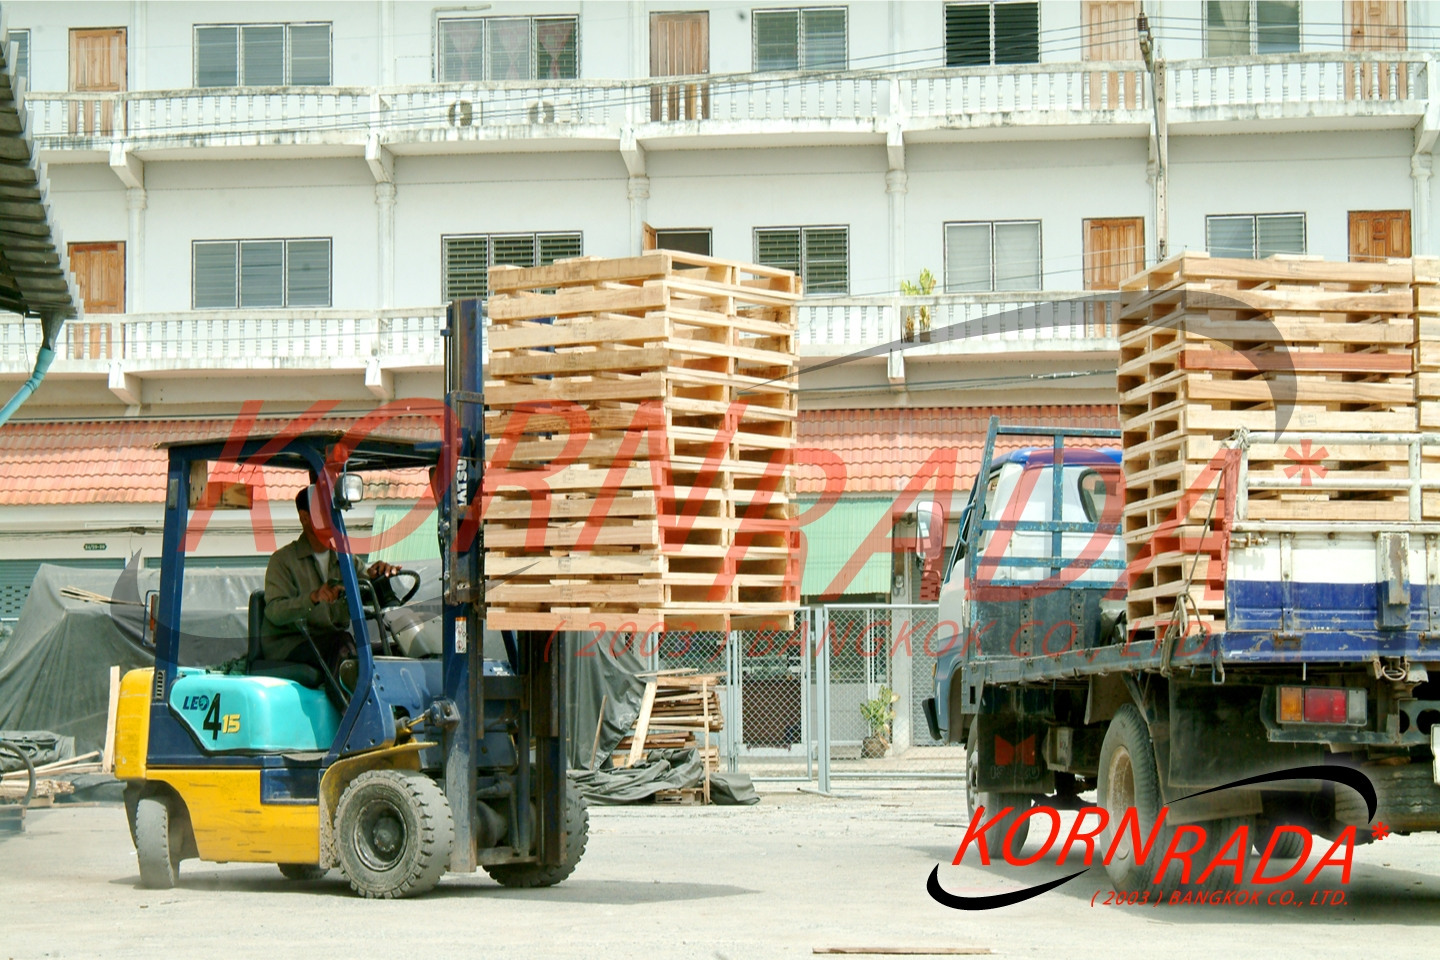 skid_wood-pallets_2